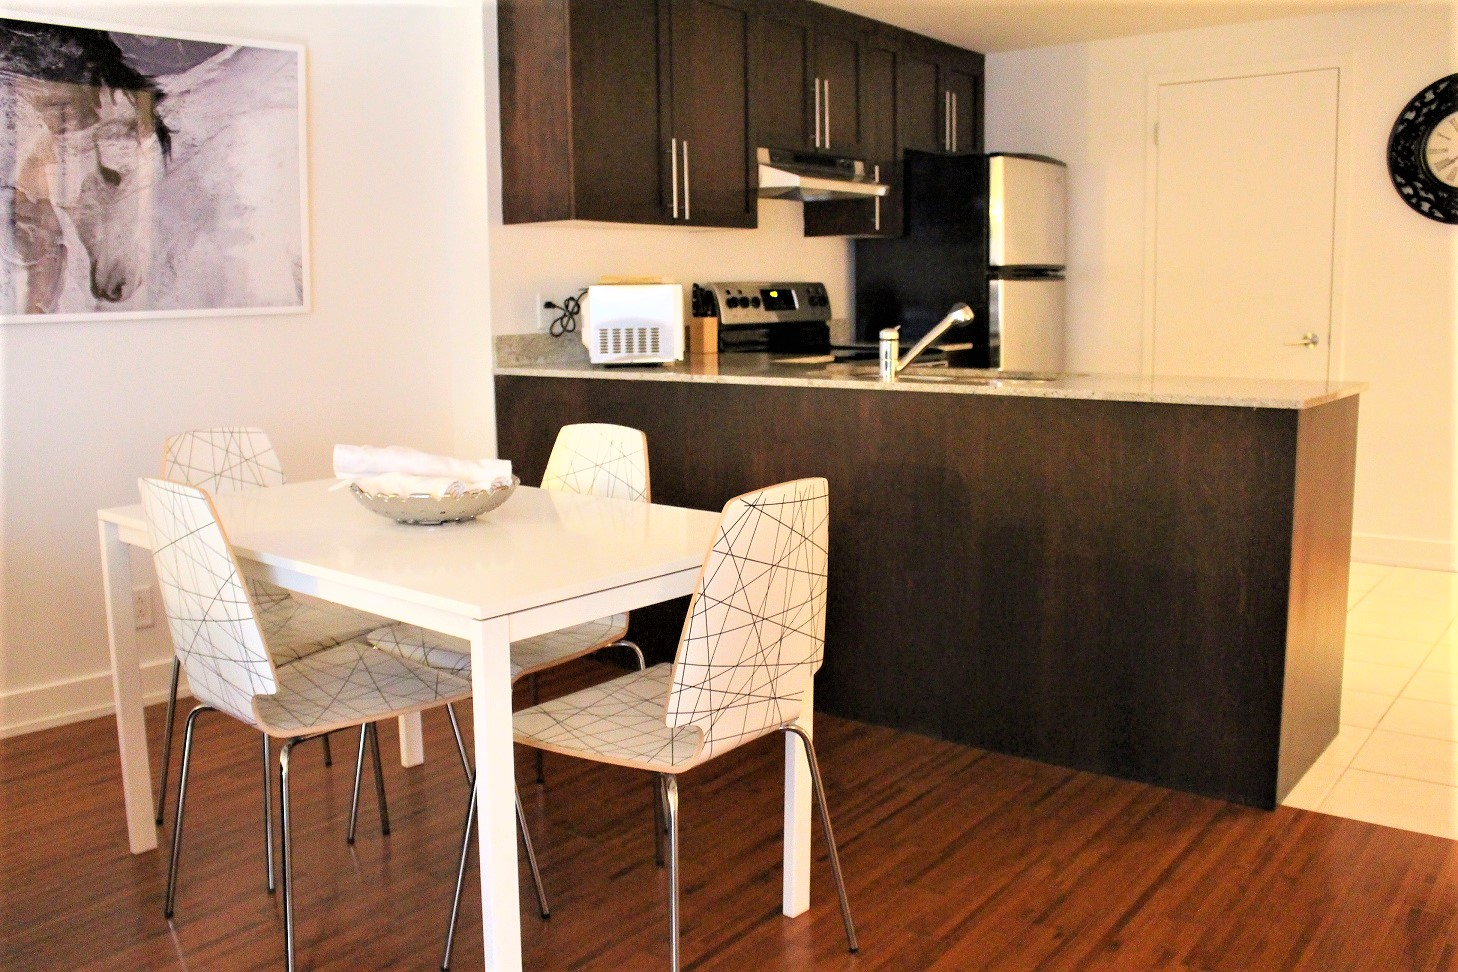 Kitchen diner at The Mosaique Apartments, Centre, Montreal